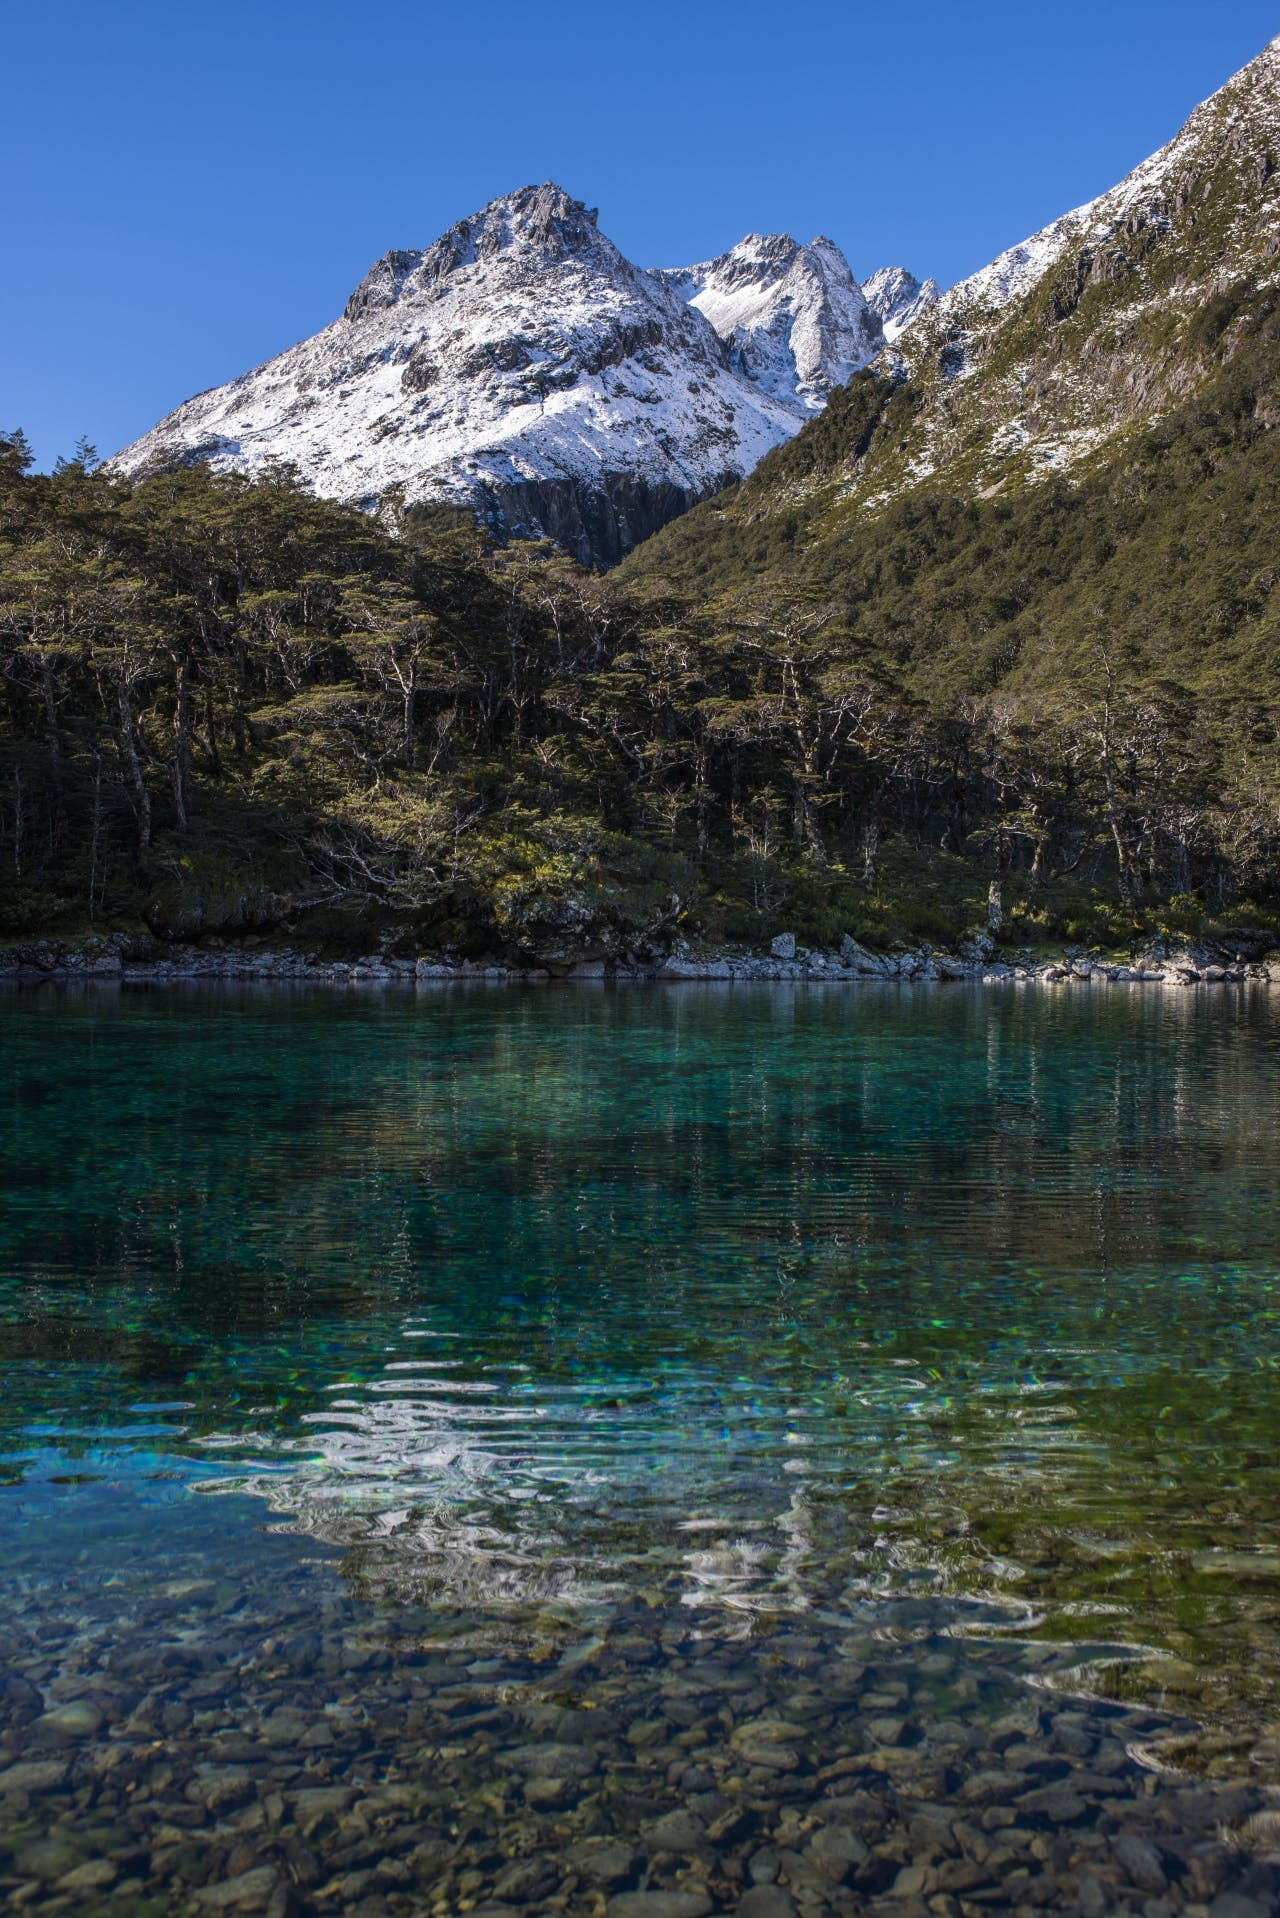 The crystal clear Blue Lake with Franklin Range beyond